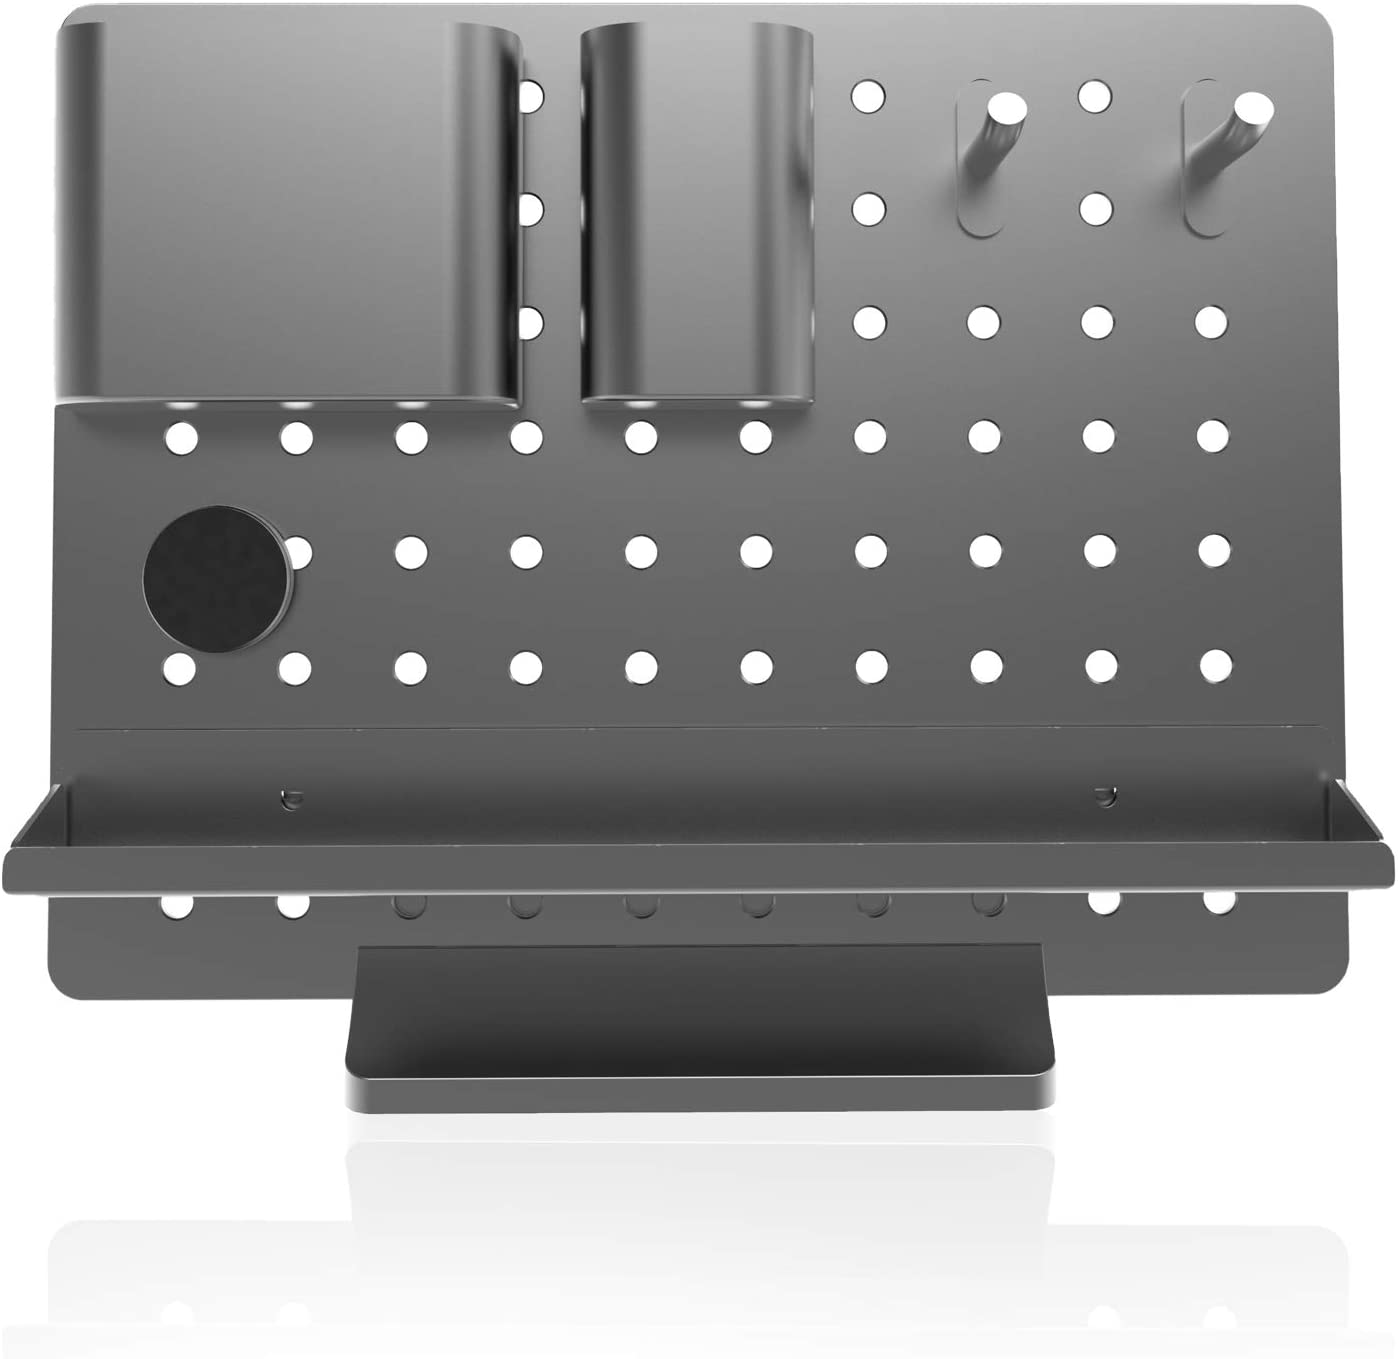 McGuffey Limited Special Price Pegboard Desk Organizer With Brand Cheap Sale Venue Adjustable Accessories Hol